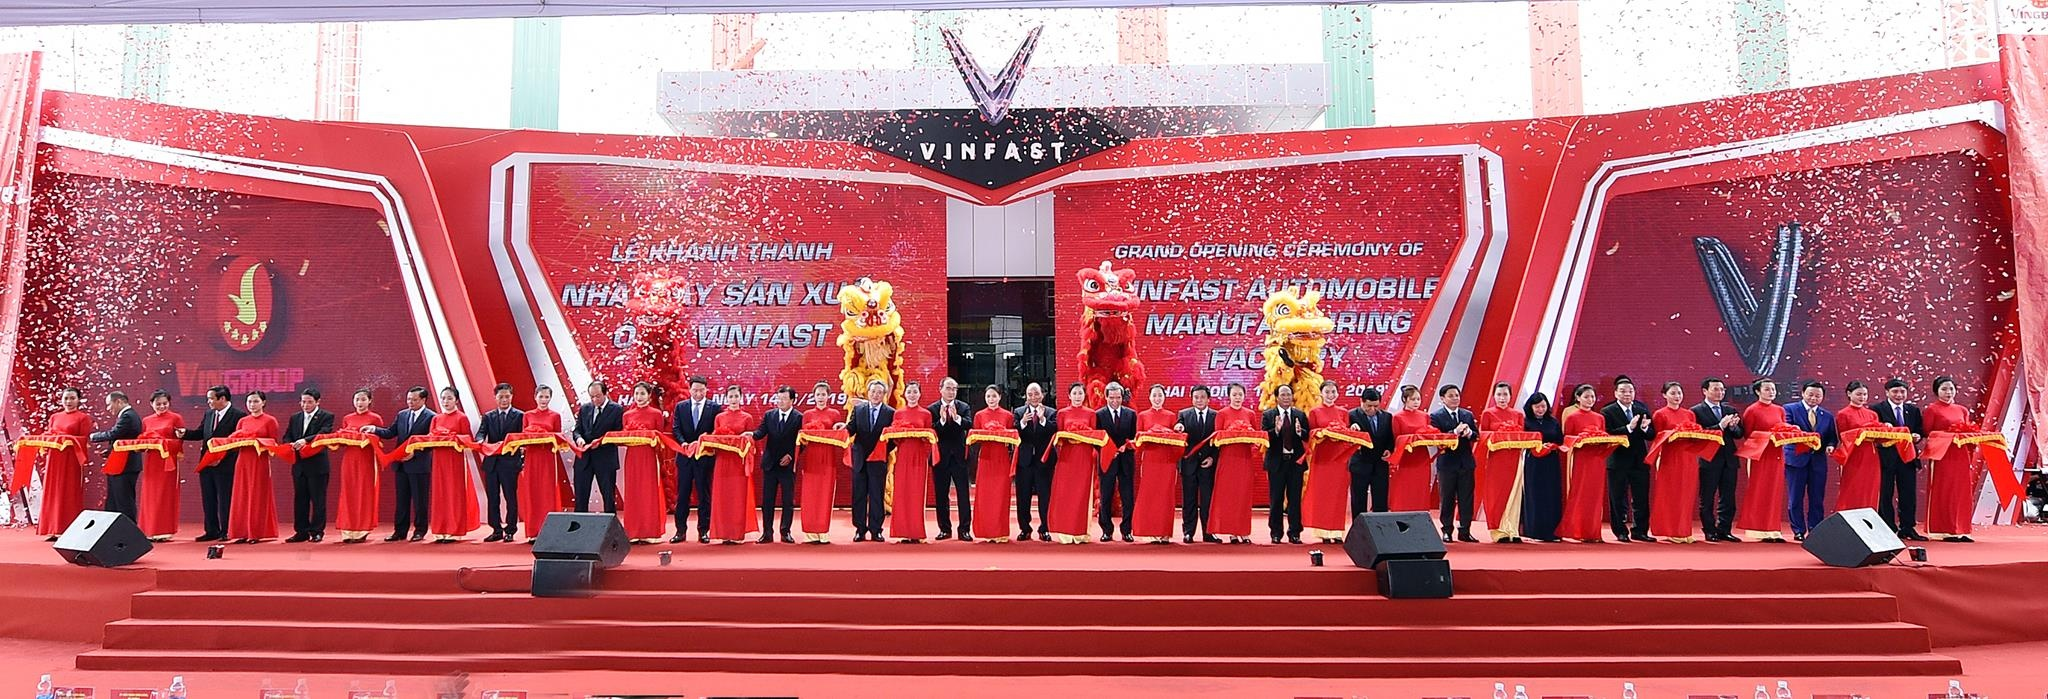 Nha may VinFast - tu dam lay thanh to hop san xuat xe cong nghe cao hinh anh 16